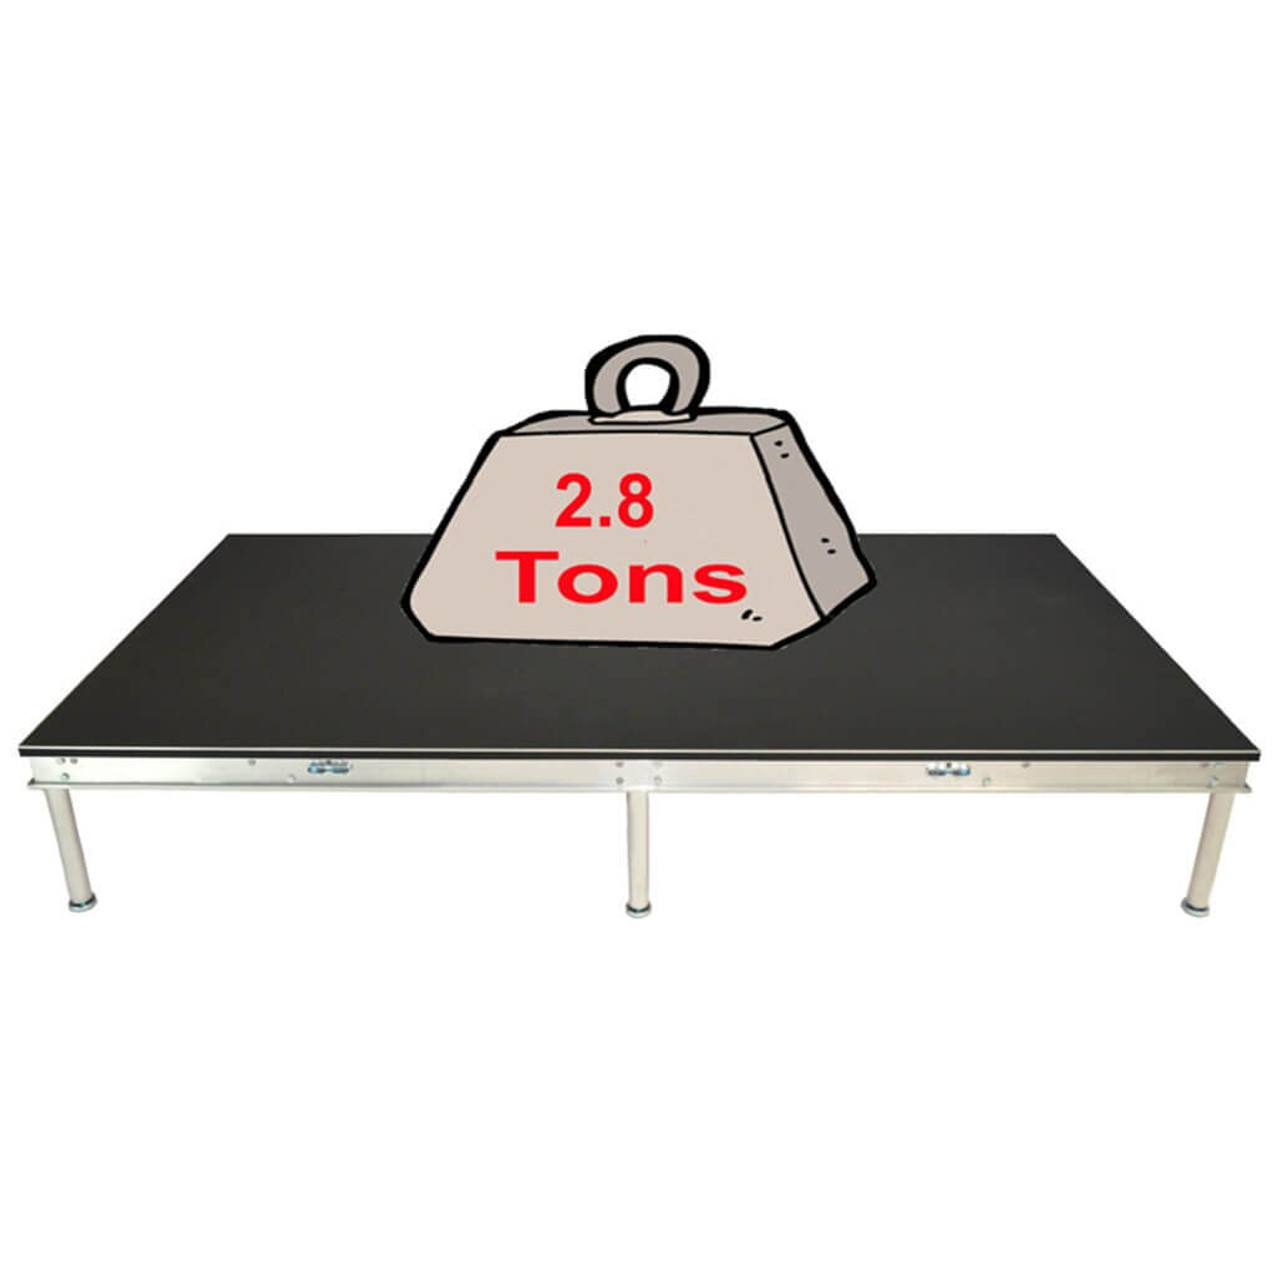 Top rated Quik Stage 4' x 16' High Portable Stage Package with Black Polyvinyl Non-Skid Surface. Additional Heights and Surfaces Available. - Holds 2.8 tons per 4 x 8 or 1.4 tons per 4 x 4 when spread out evenly.